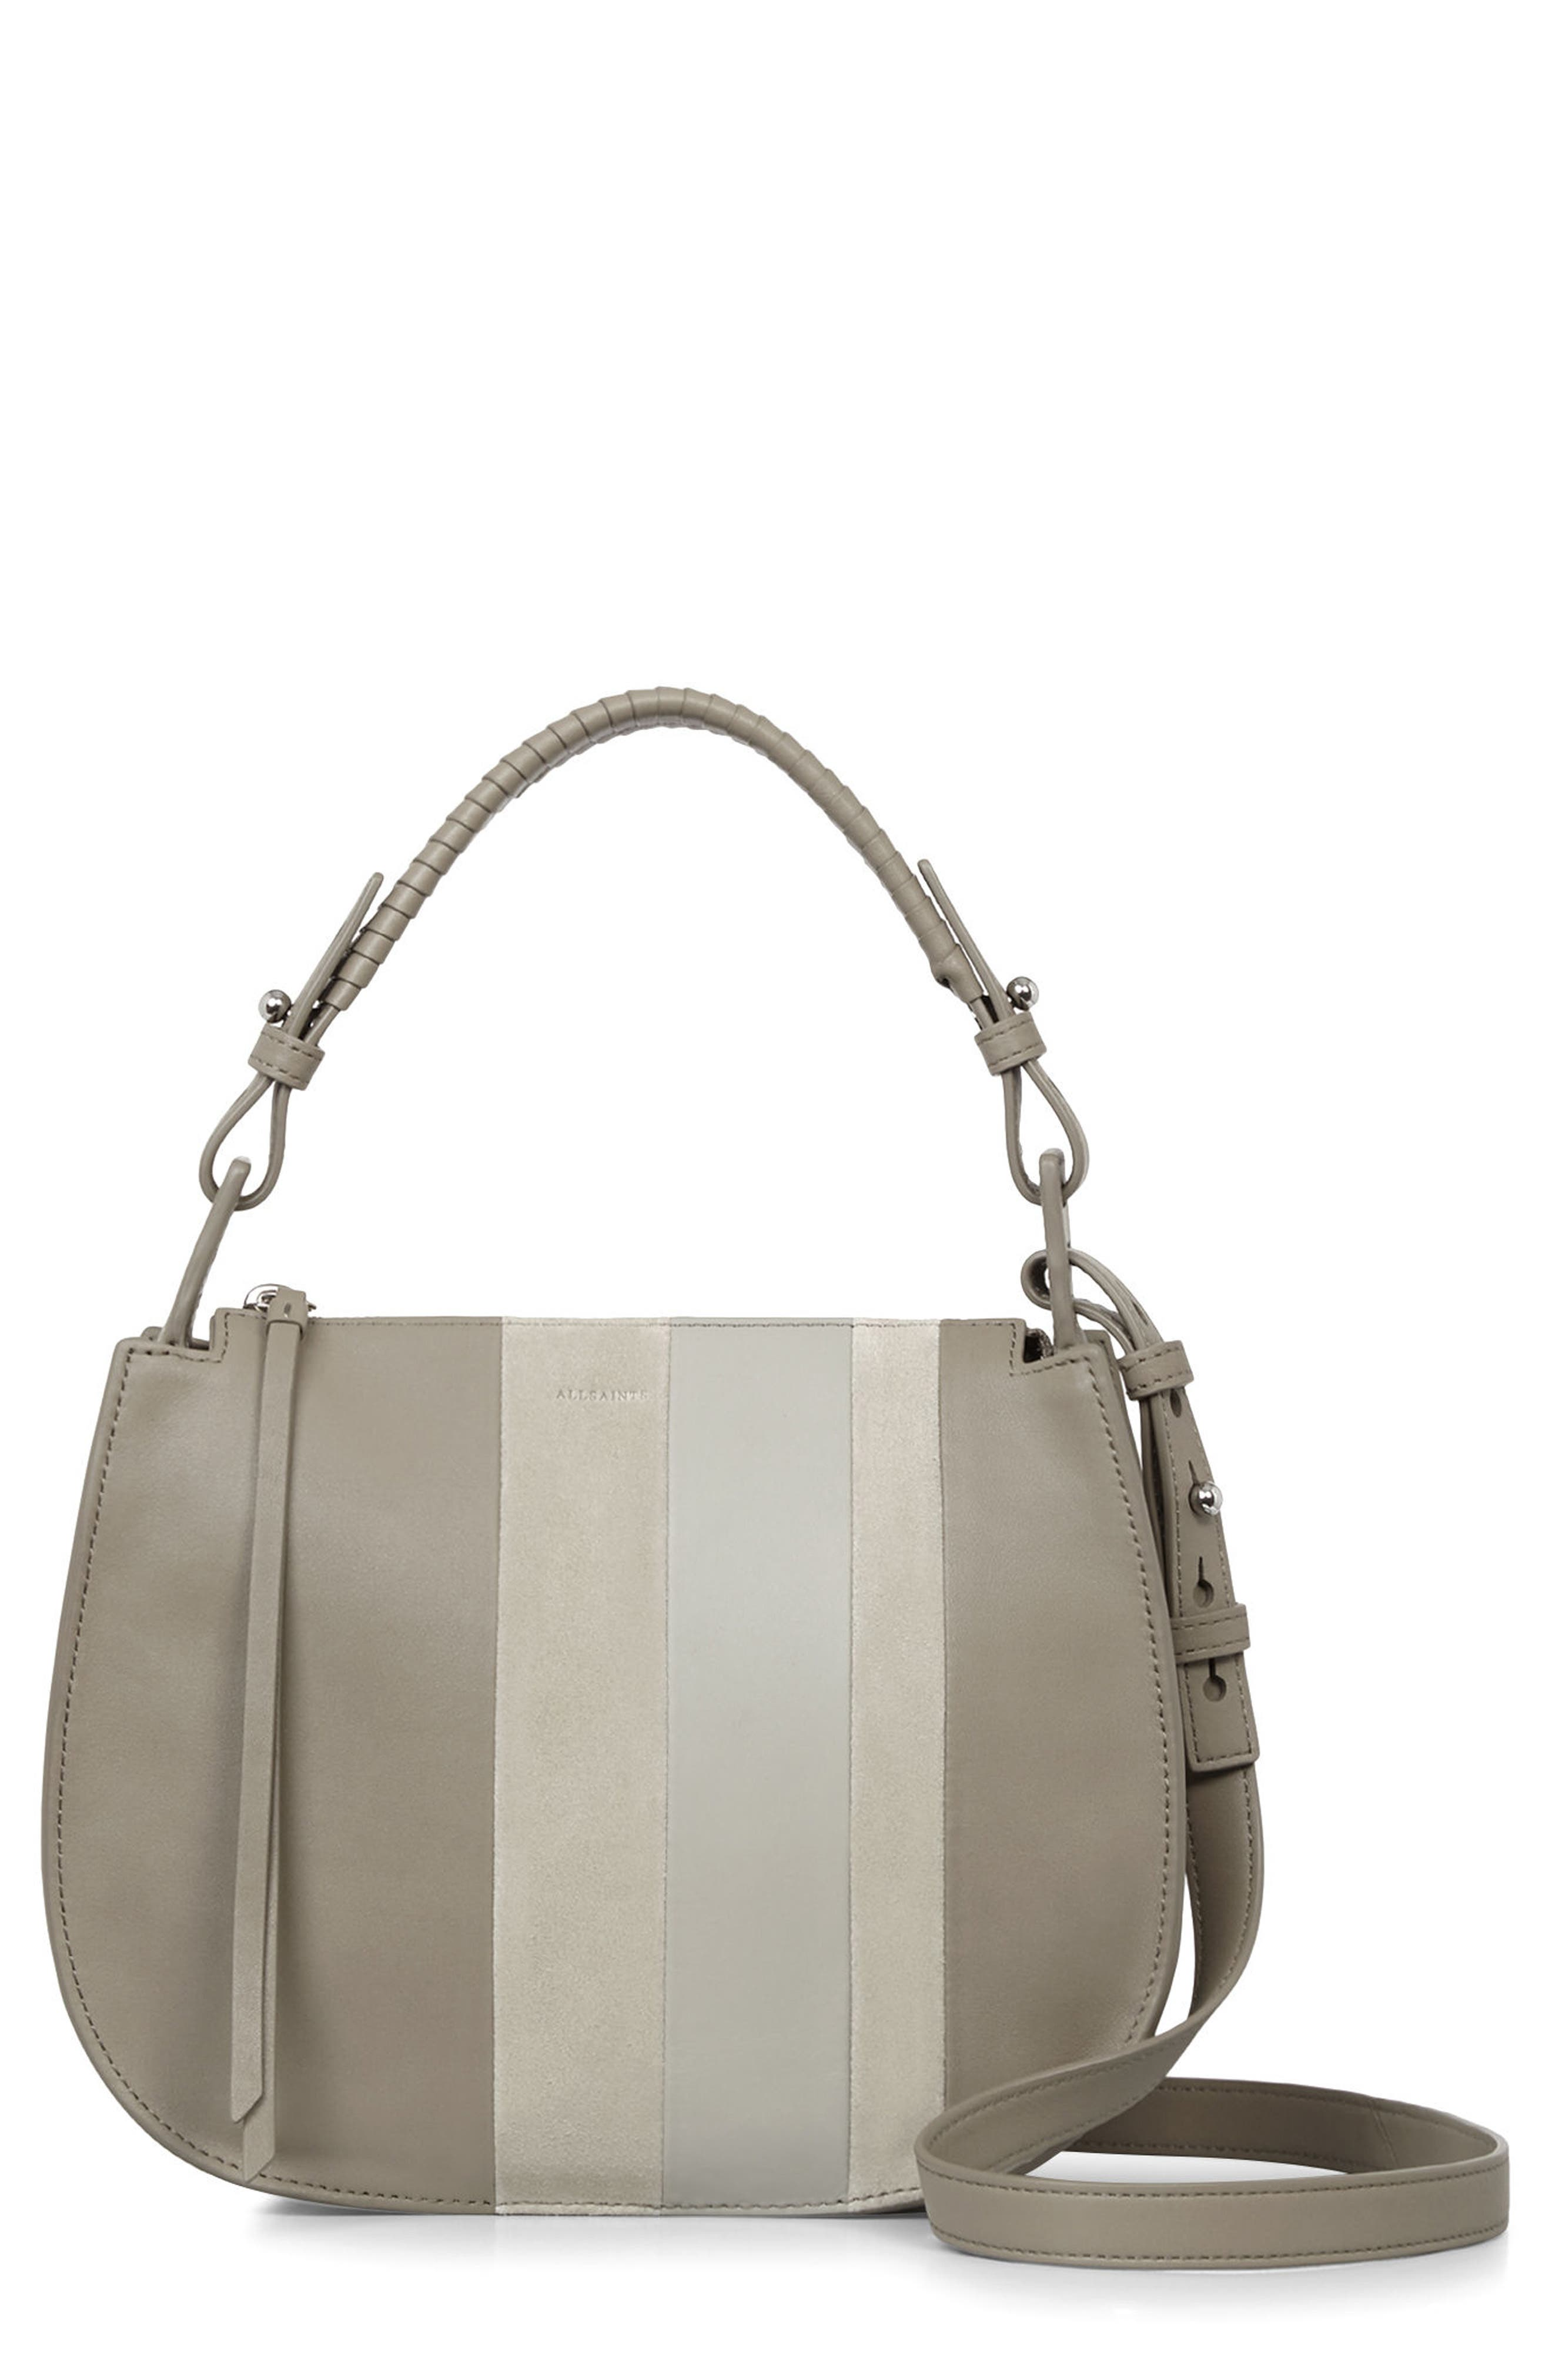 Casey Lea Calfskin Leather & Suede Hobo,                             Main thumbnail 1, color,                             Taupe Grey